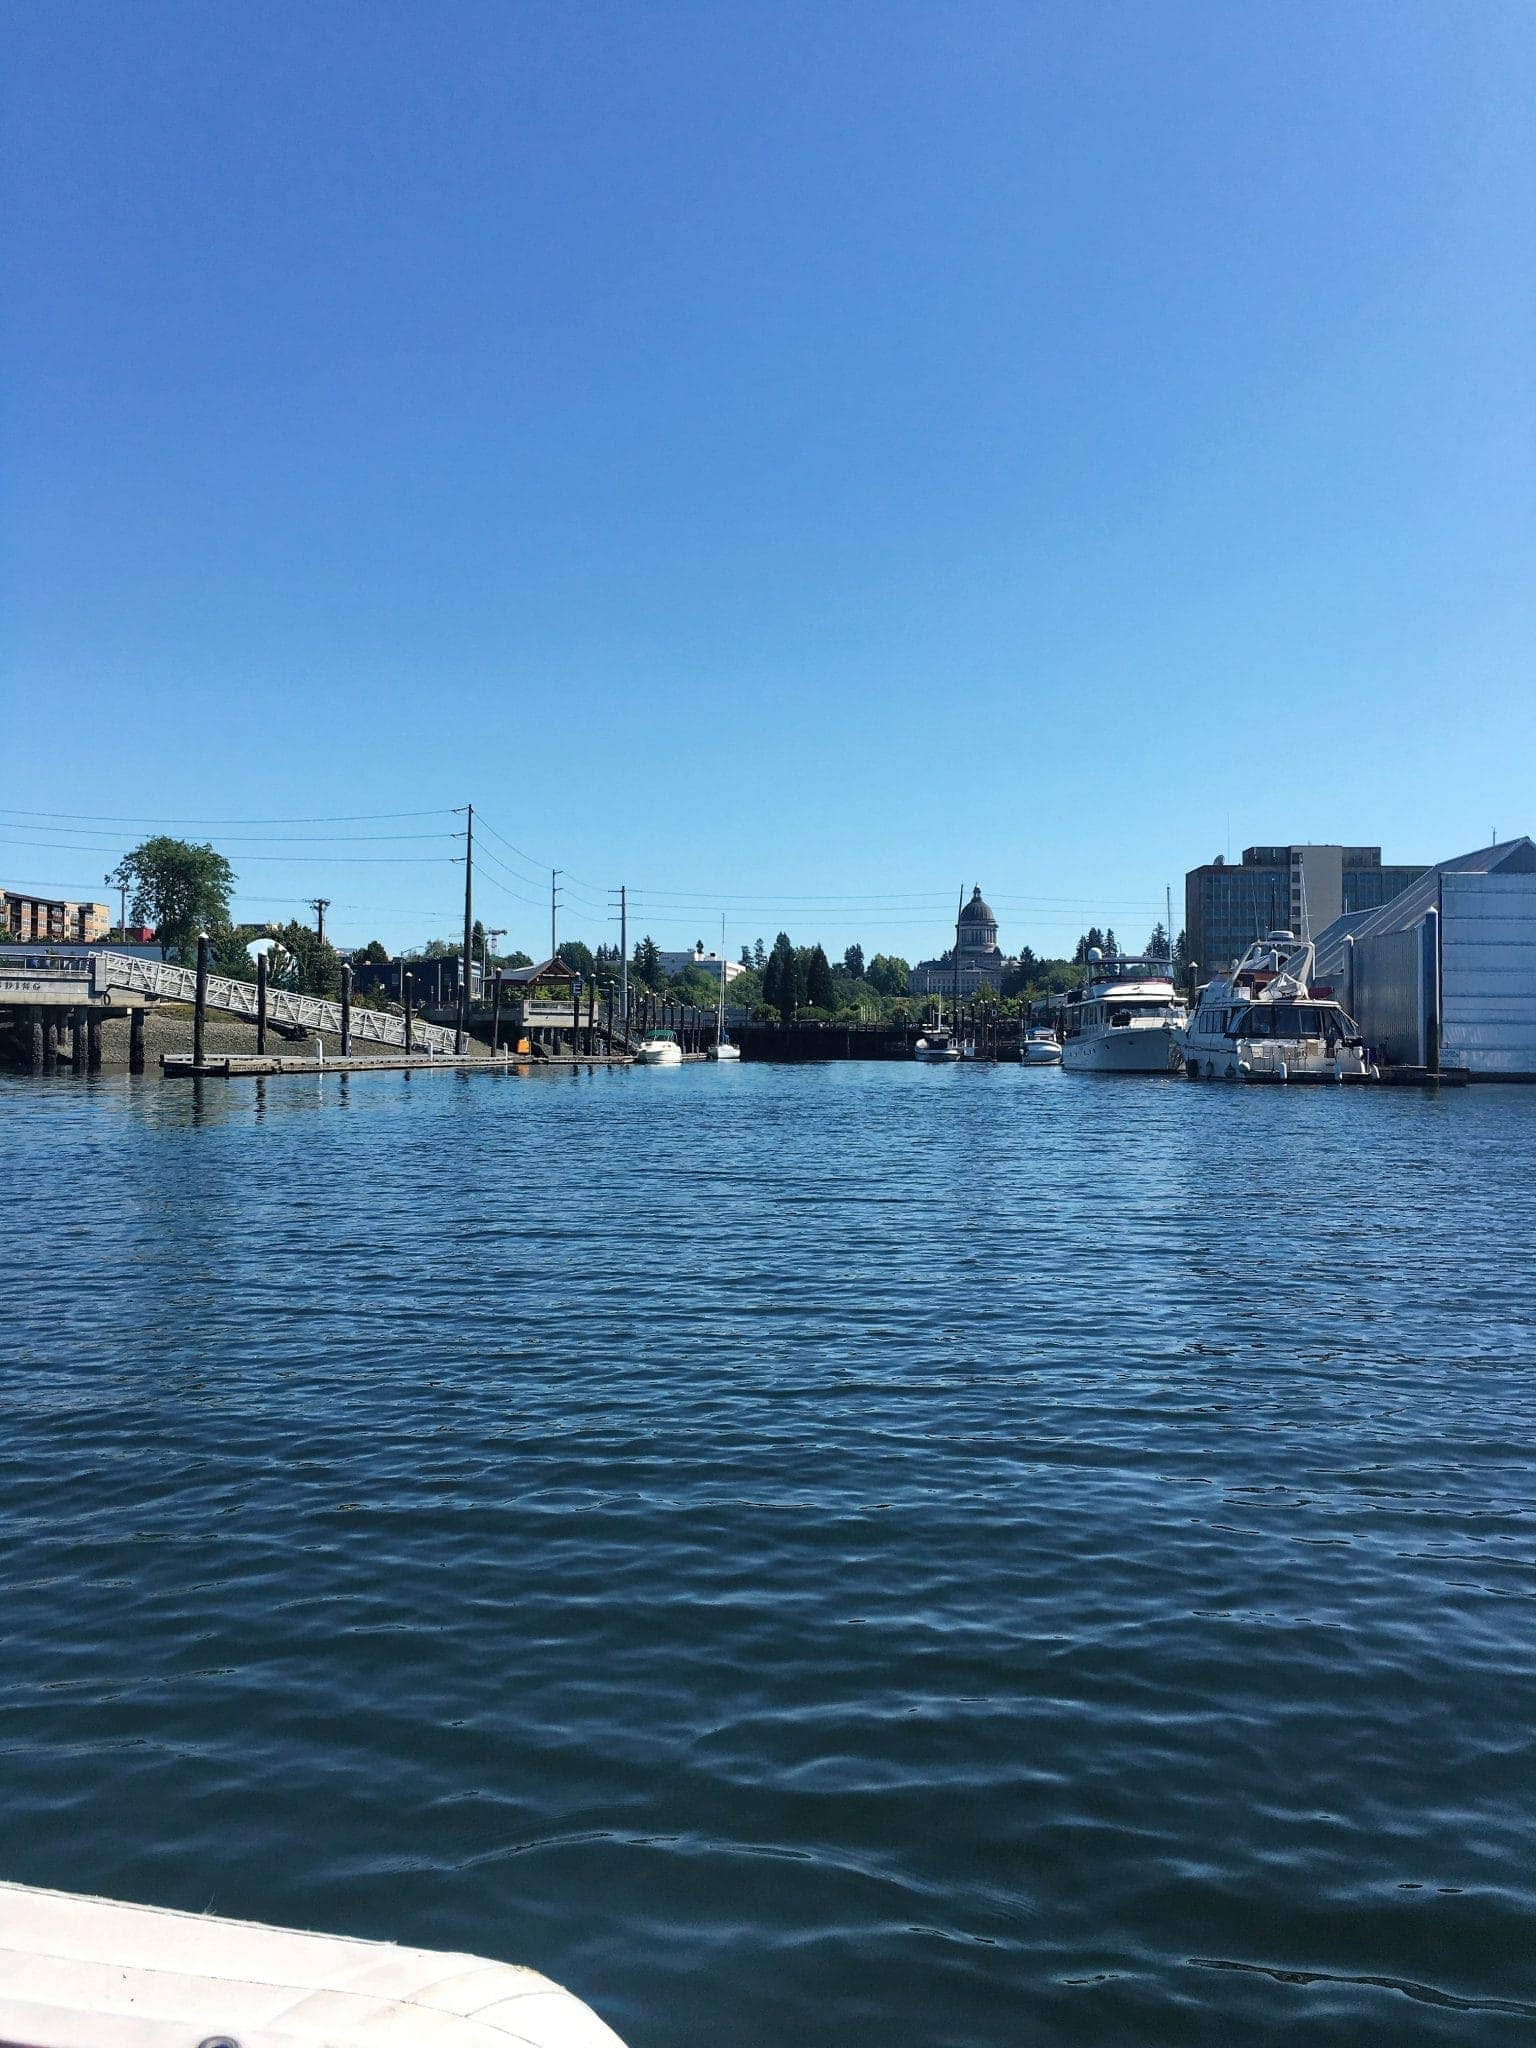 Dinghying in to Percival Landing